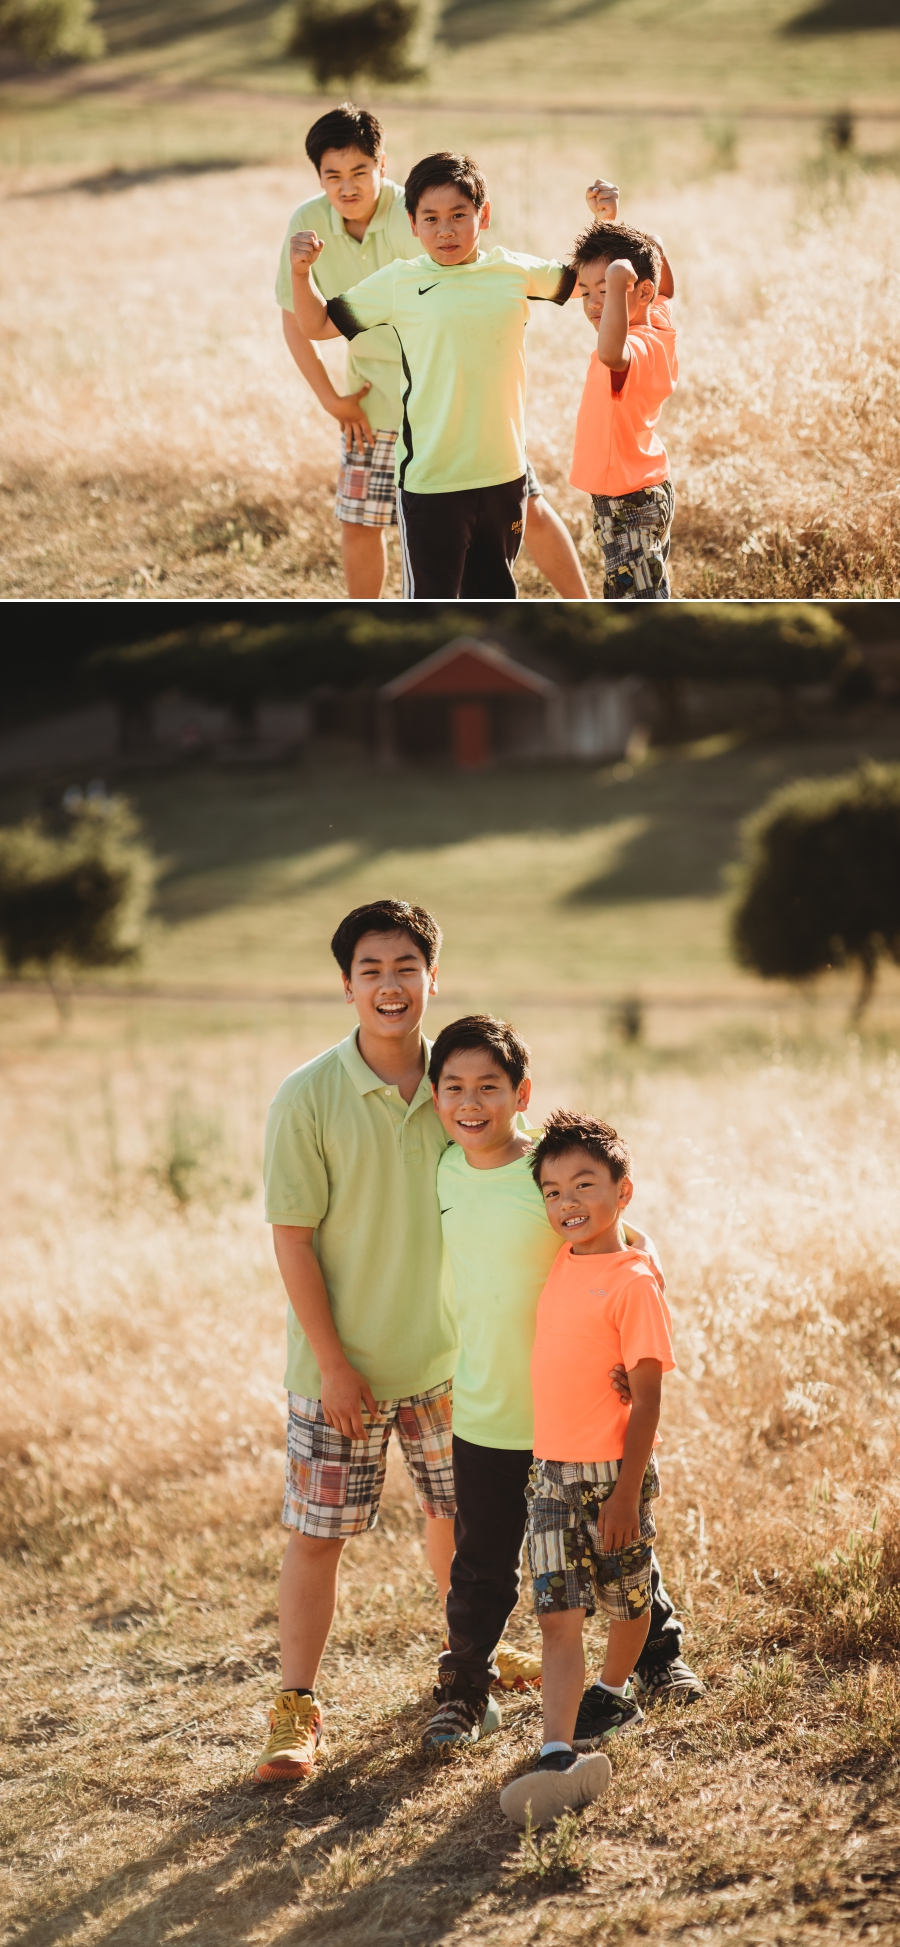 SUN FAMILY AT GARIN PARK - EAST BAY LIFESTYLE PHOTOGRAPHY 25.jpg